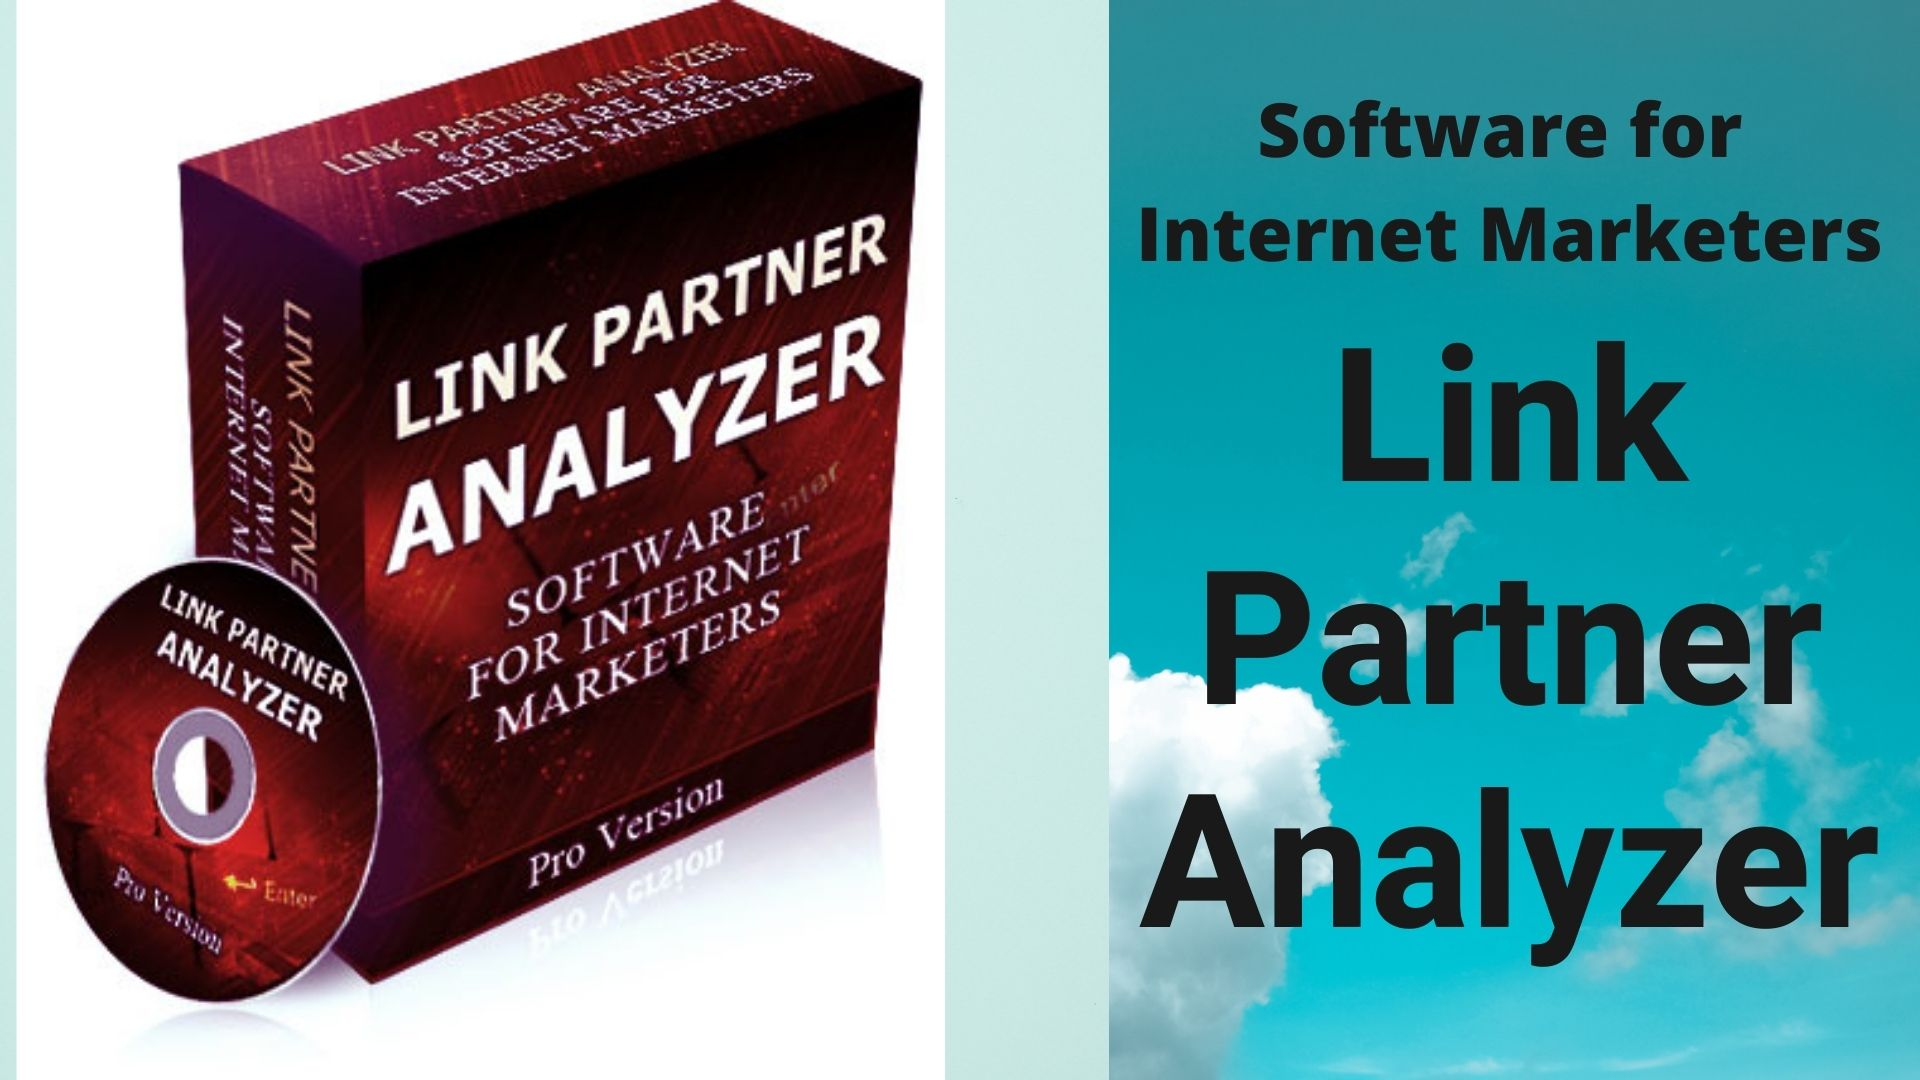 Link Partner Analyzer About to Discover the Time Saving,  Profit Boosting Magic